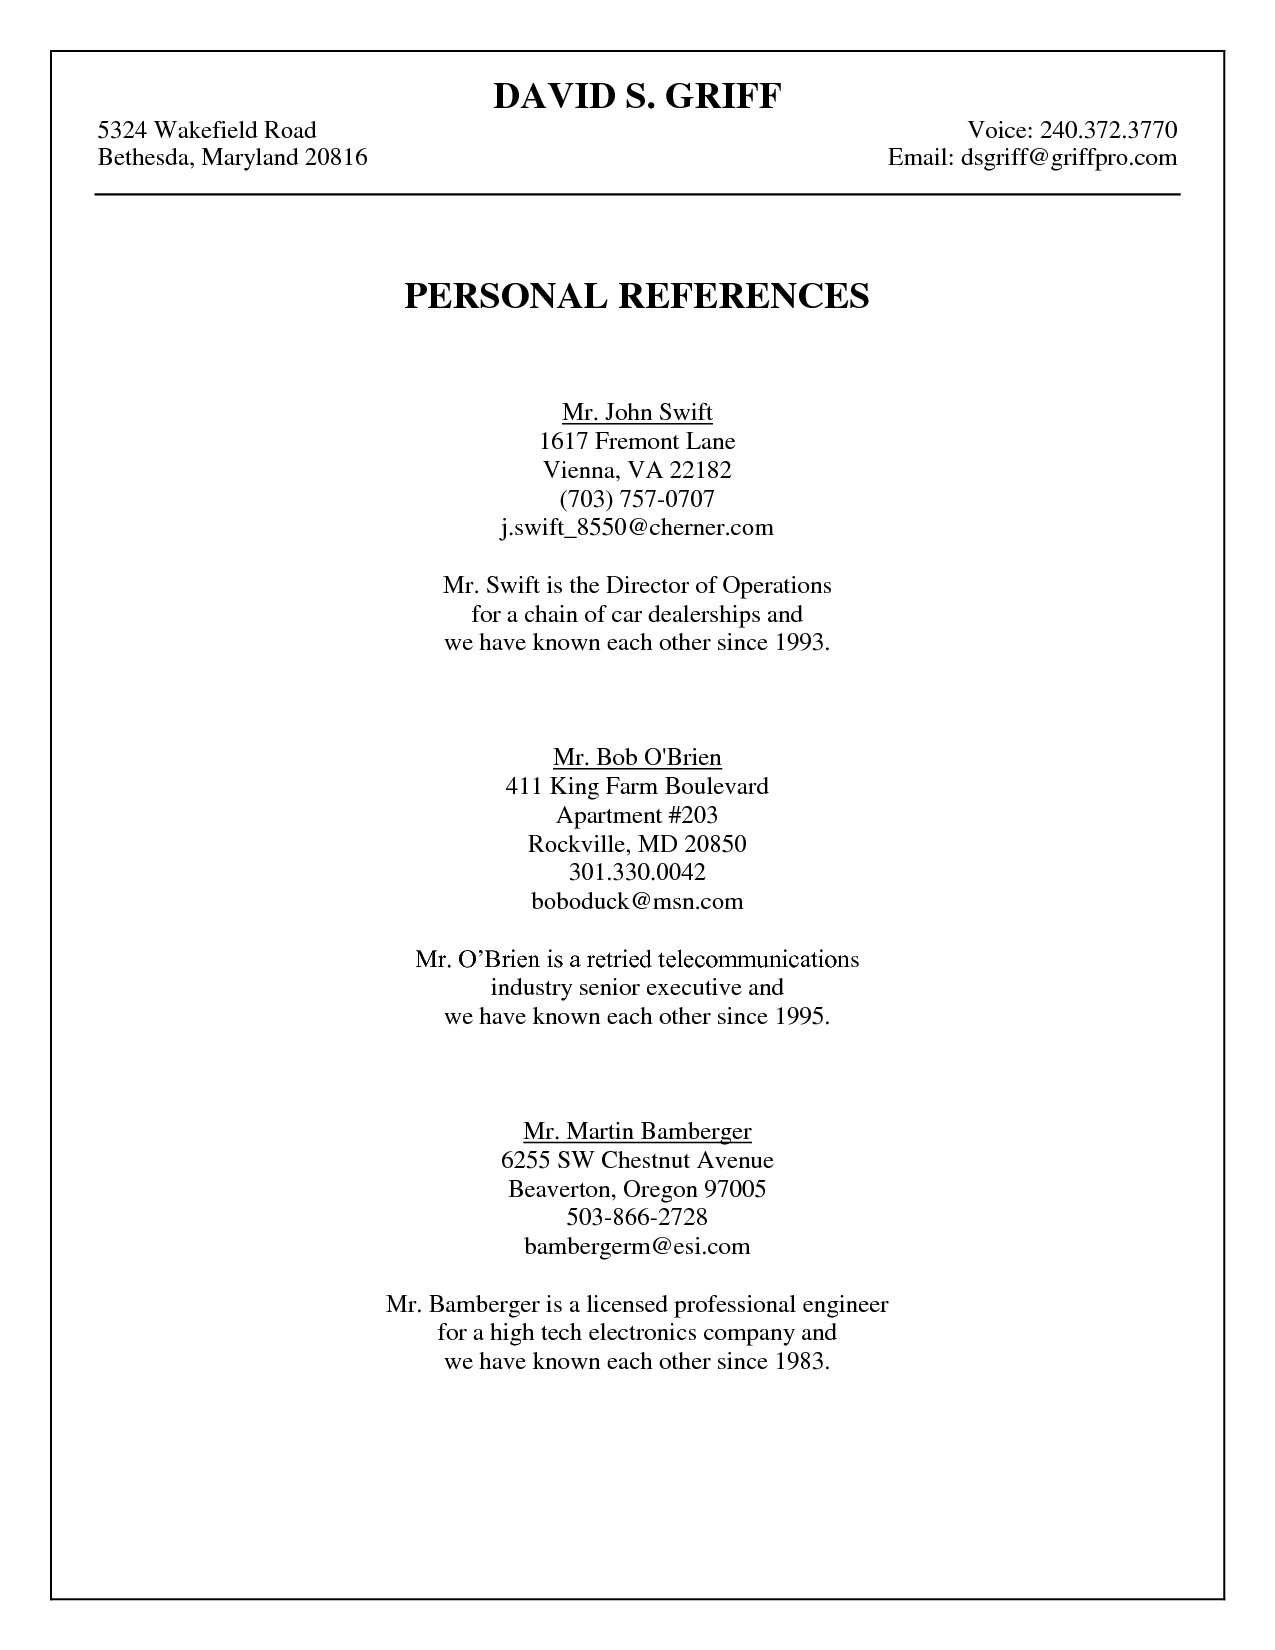 Personal Reference Template Griff Personal References 071407